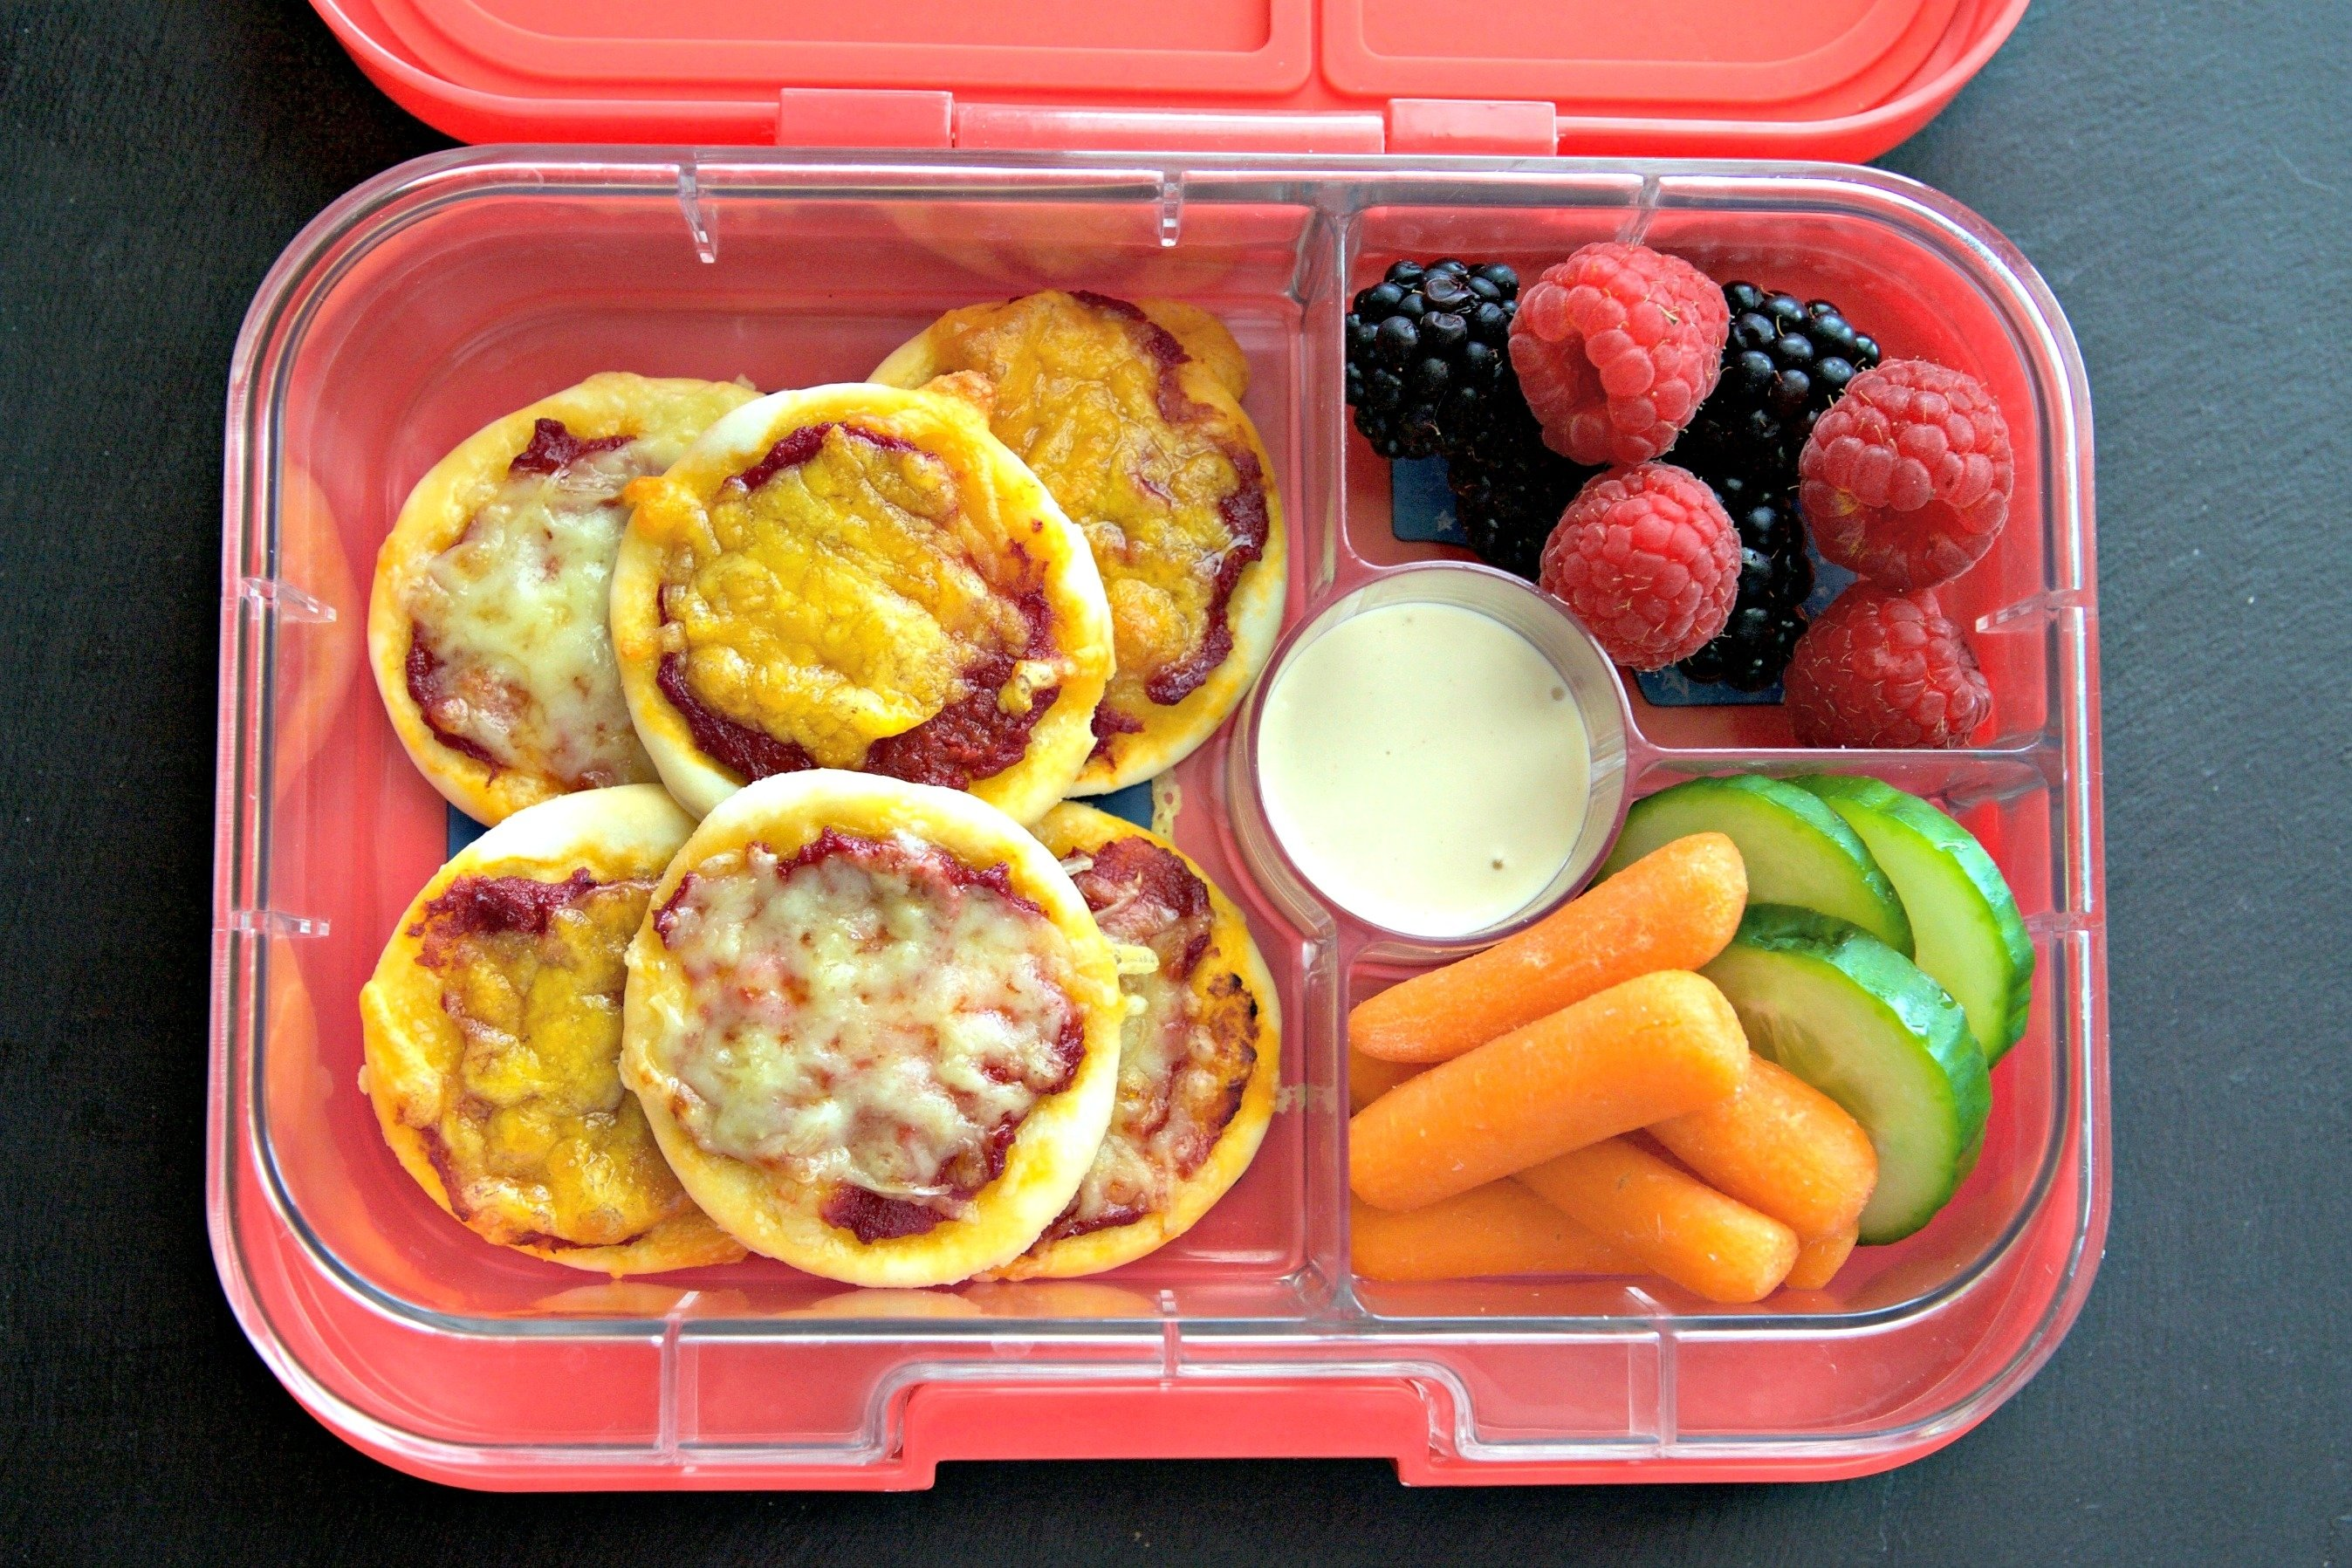 10 Trendy Meal Ideas For Picky Eaters mini pizza recipe the perfect picky eater meal yumbox 4 2020